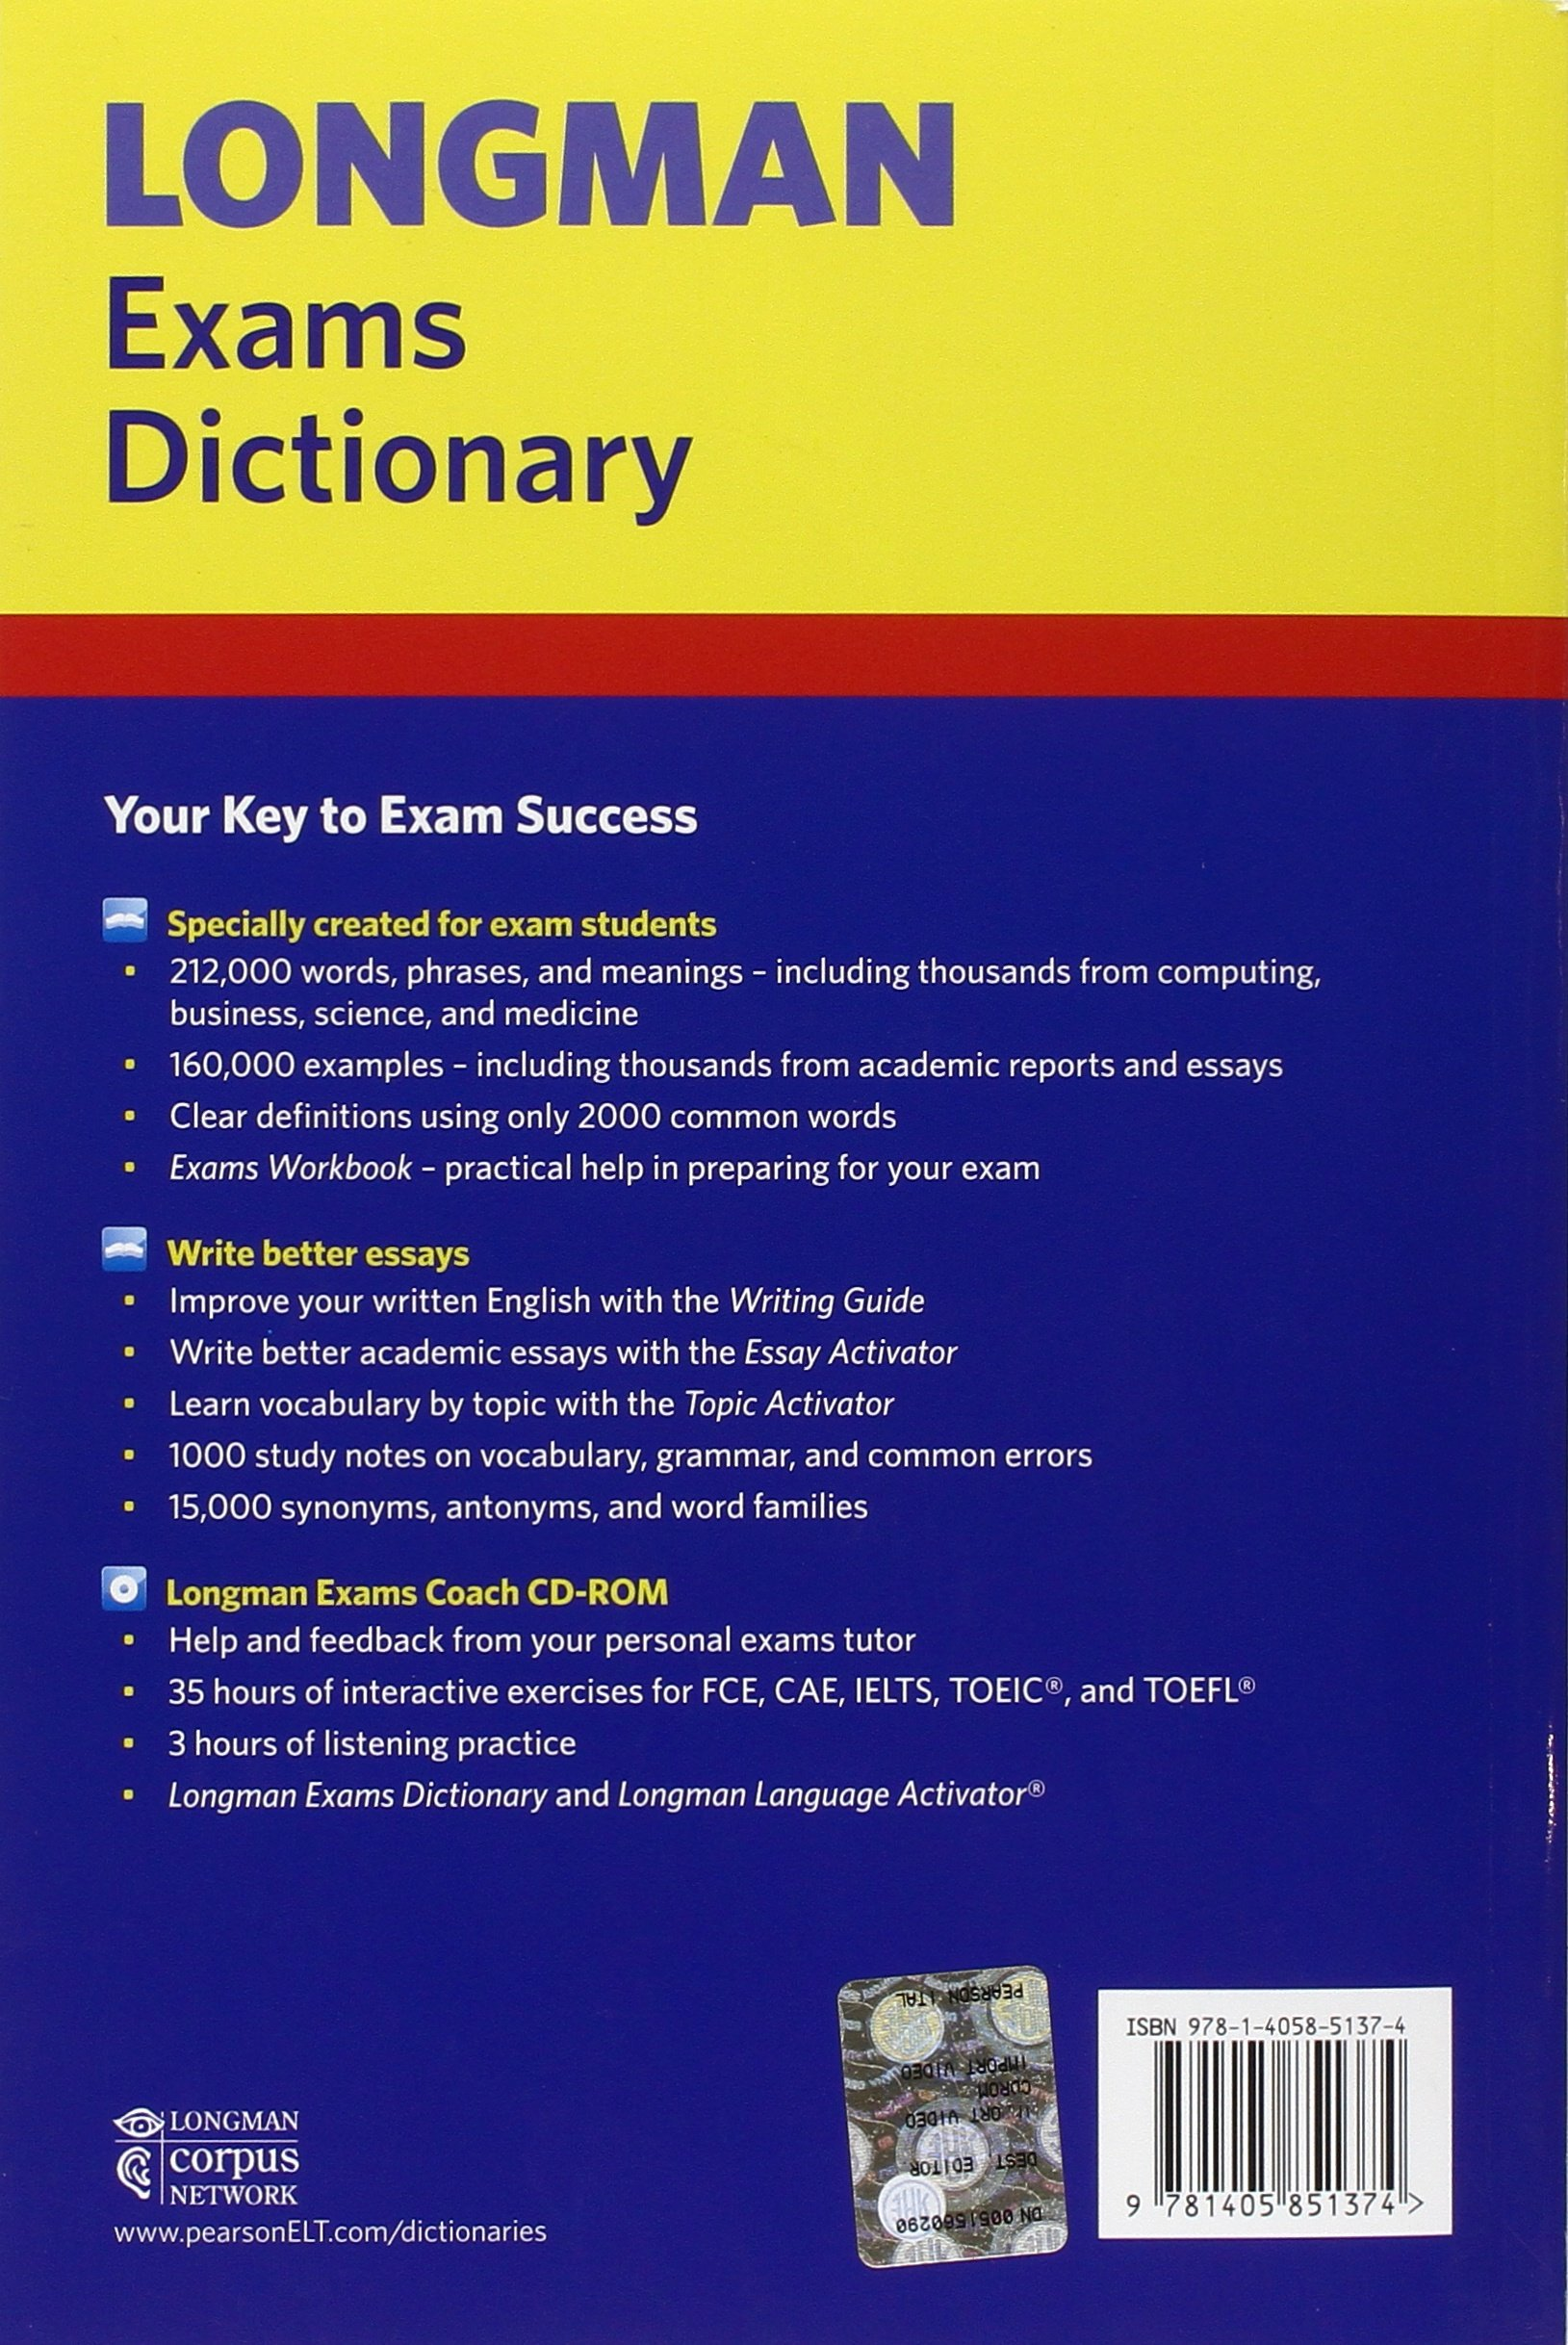 longman exams dictionary update l exams dictionary co longman exams dictionary update l exams dictionary co uk pearson education 9781405851374 books